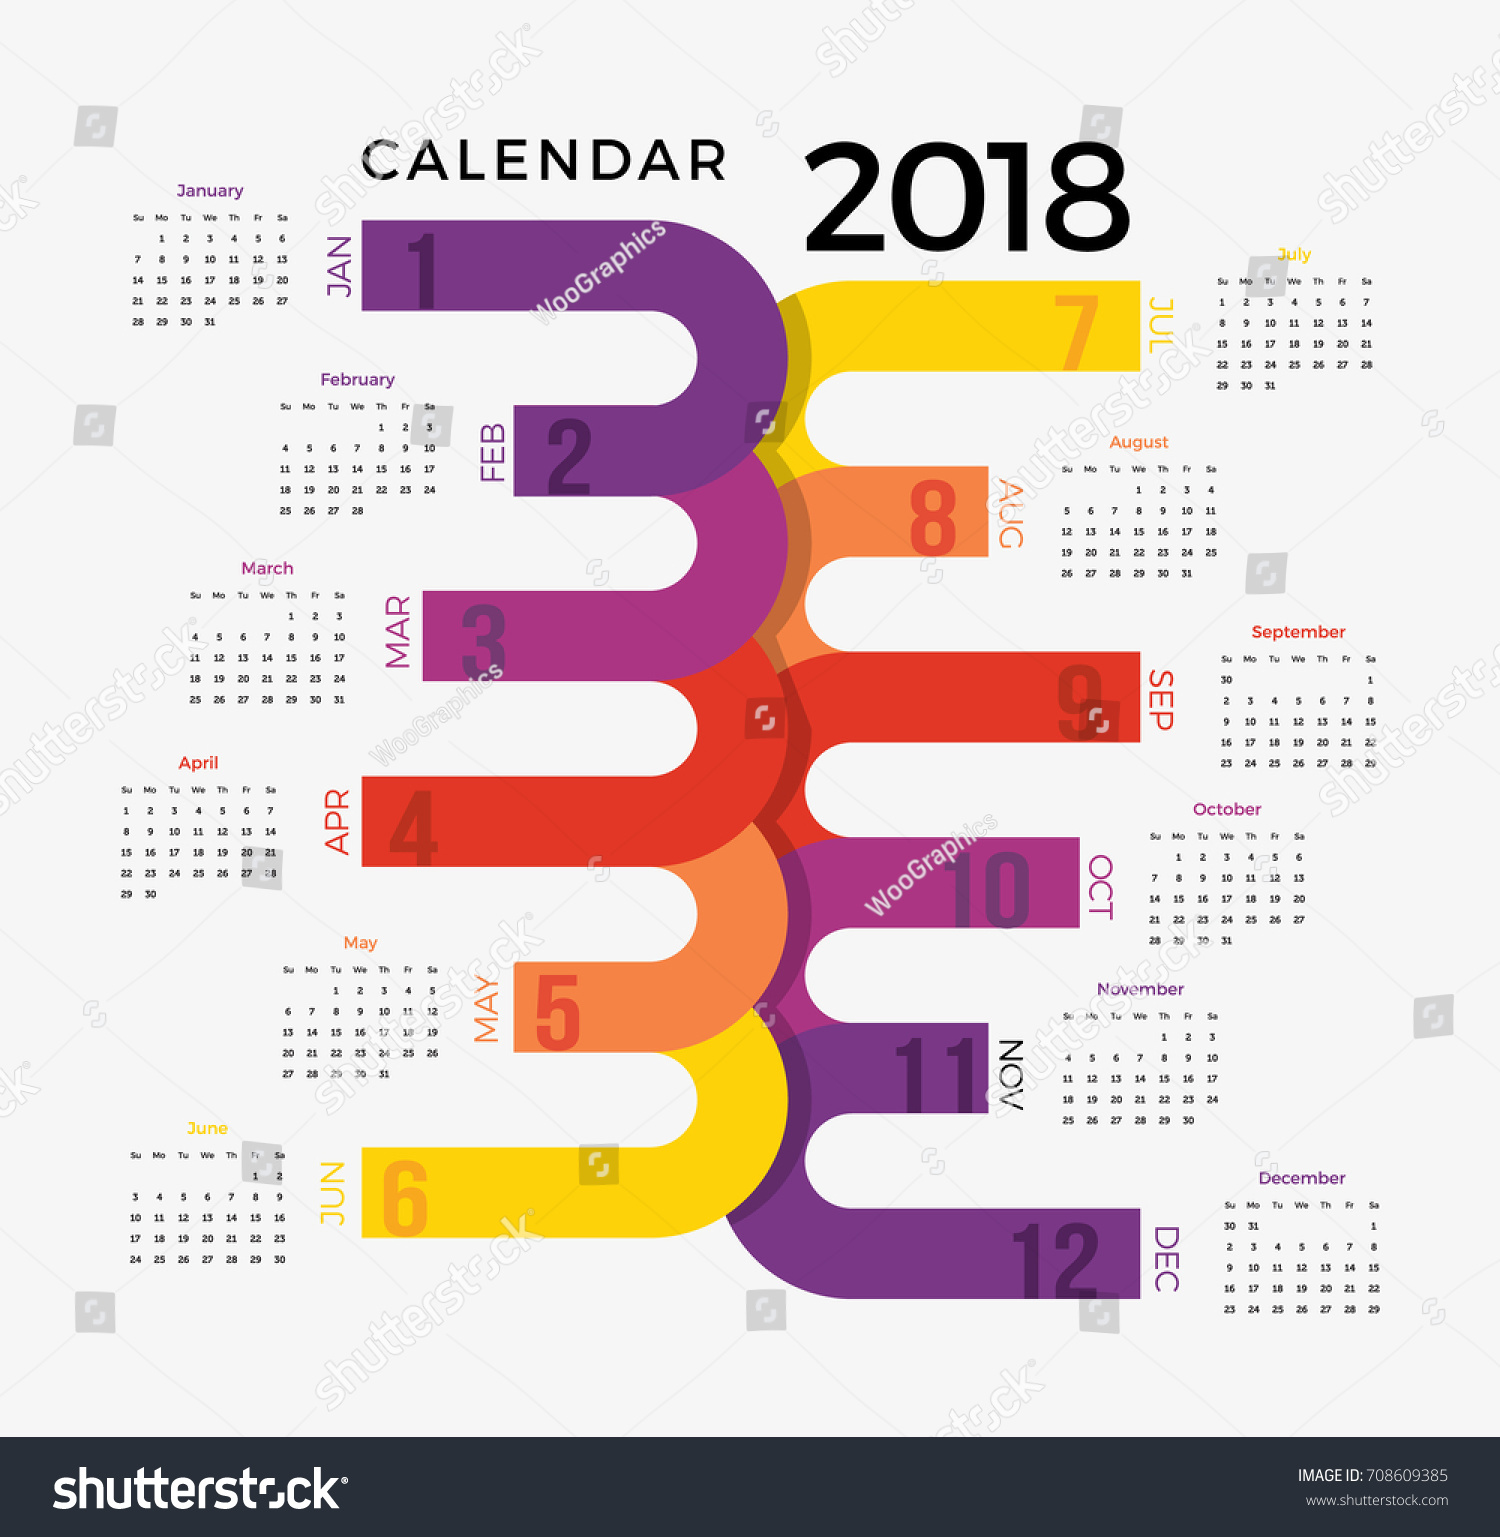 Calendar Design Free Vector : Calendar template colorful illustrative happy stock